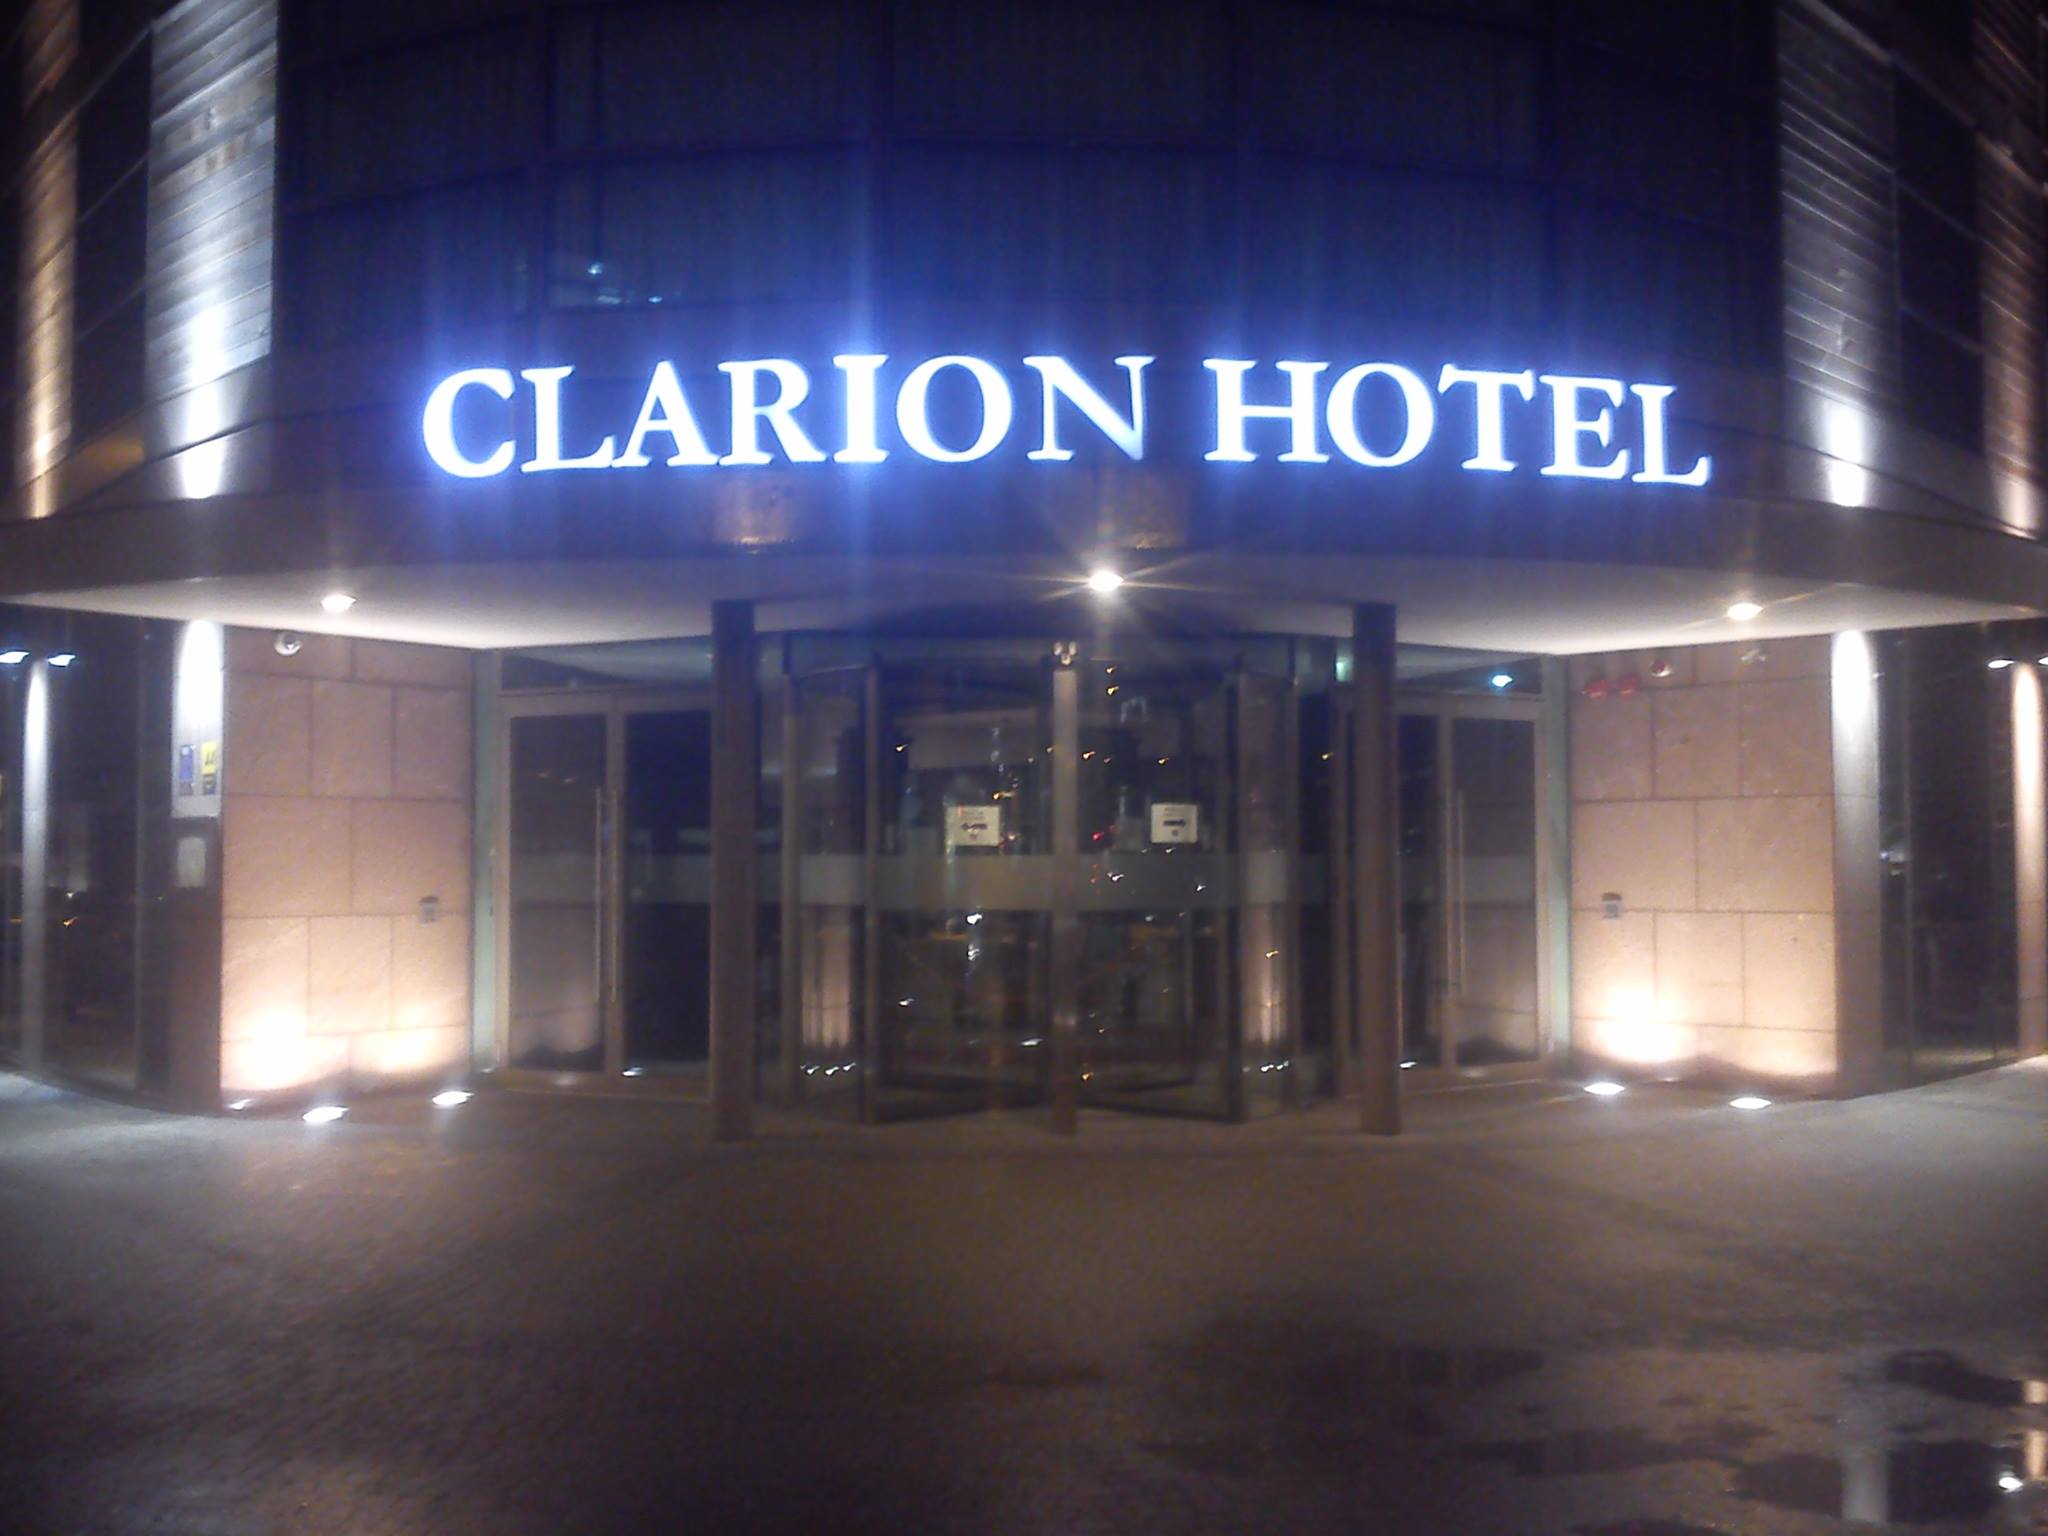 Hotel Clarion Sign , Cork City